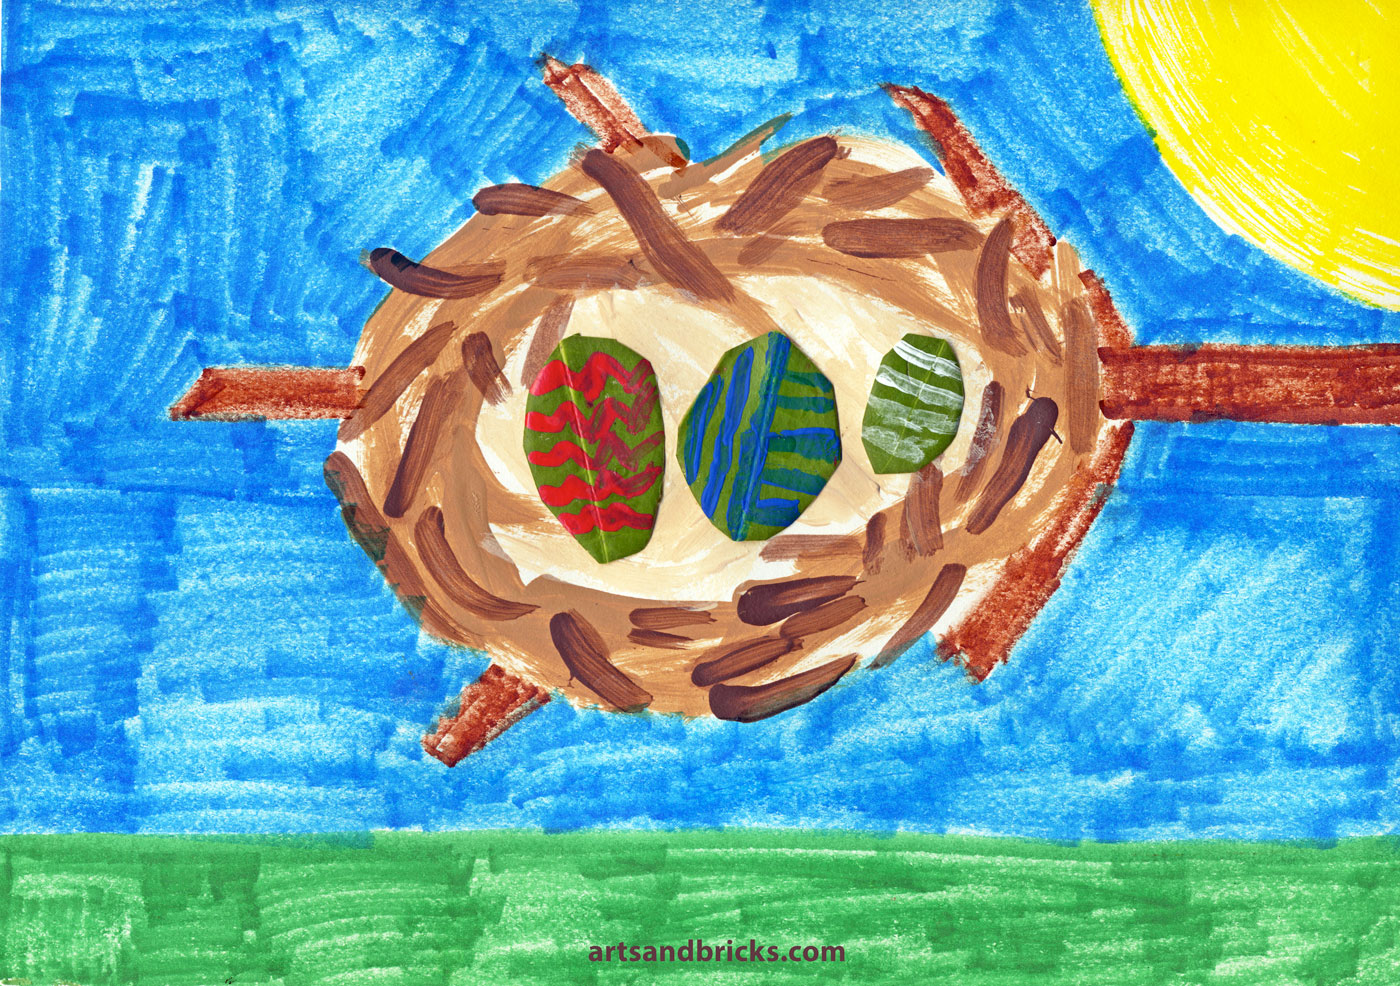 Kid-painted nest in tree branch, Easter eggs made from cut and painted leaves. Kids Artwork.